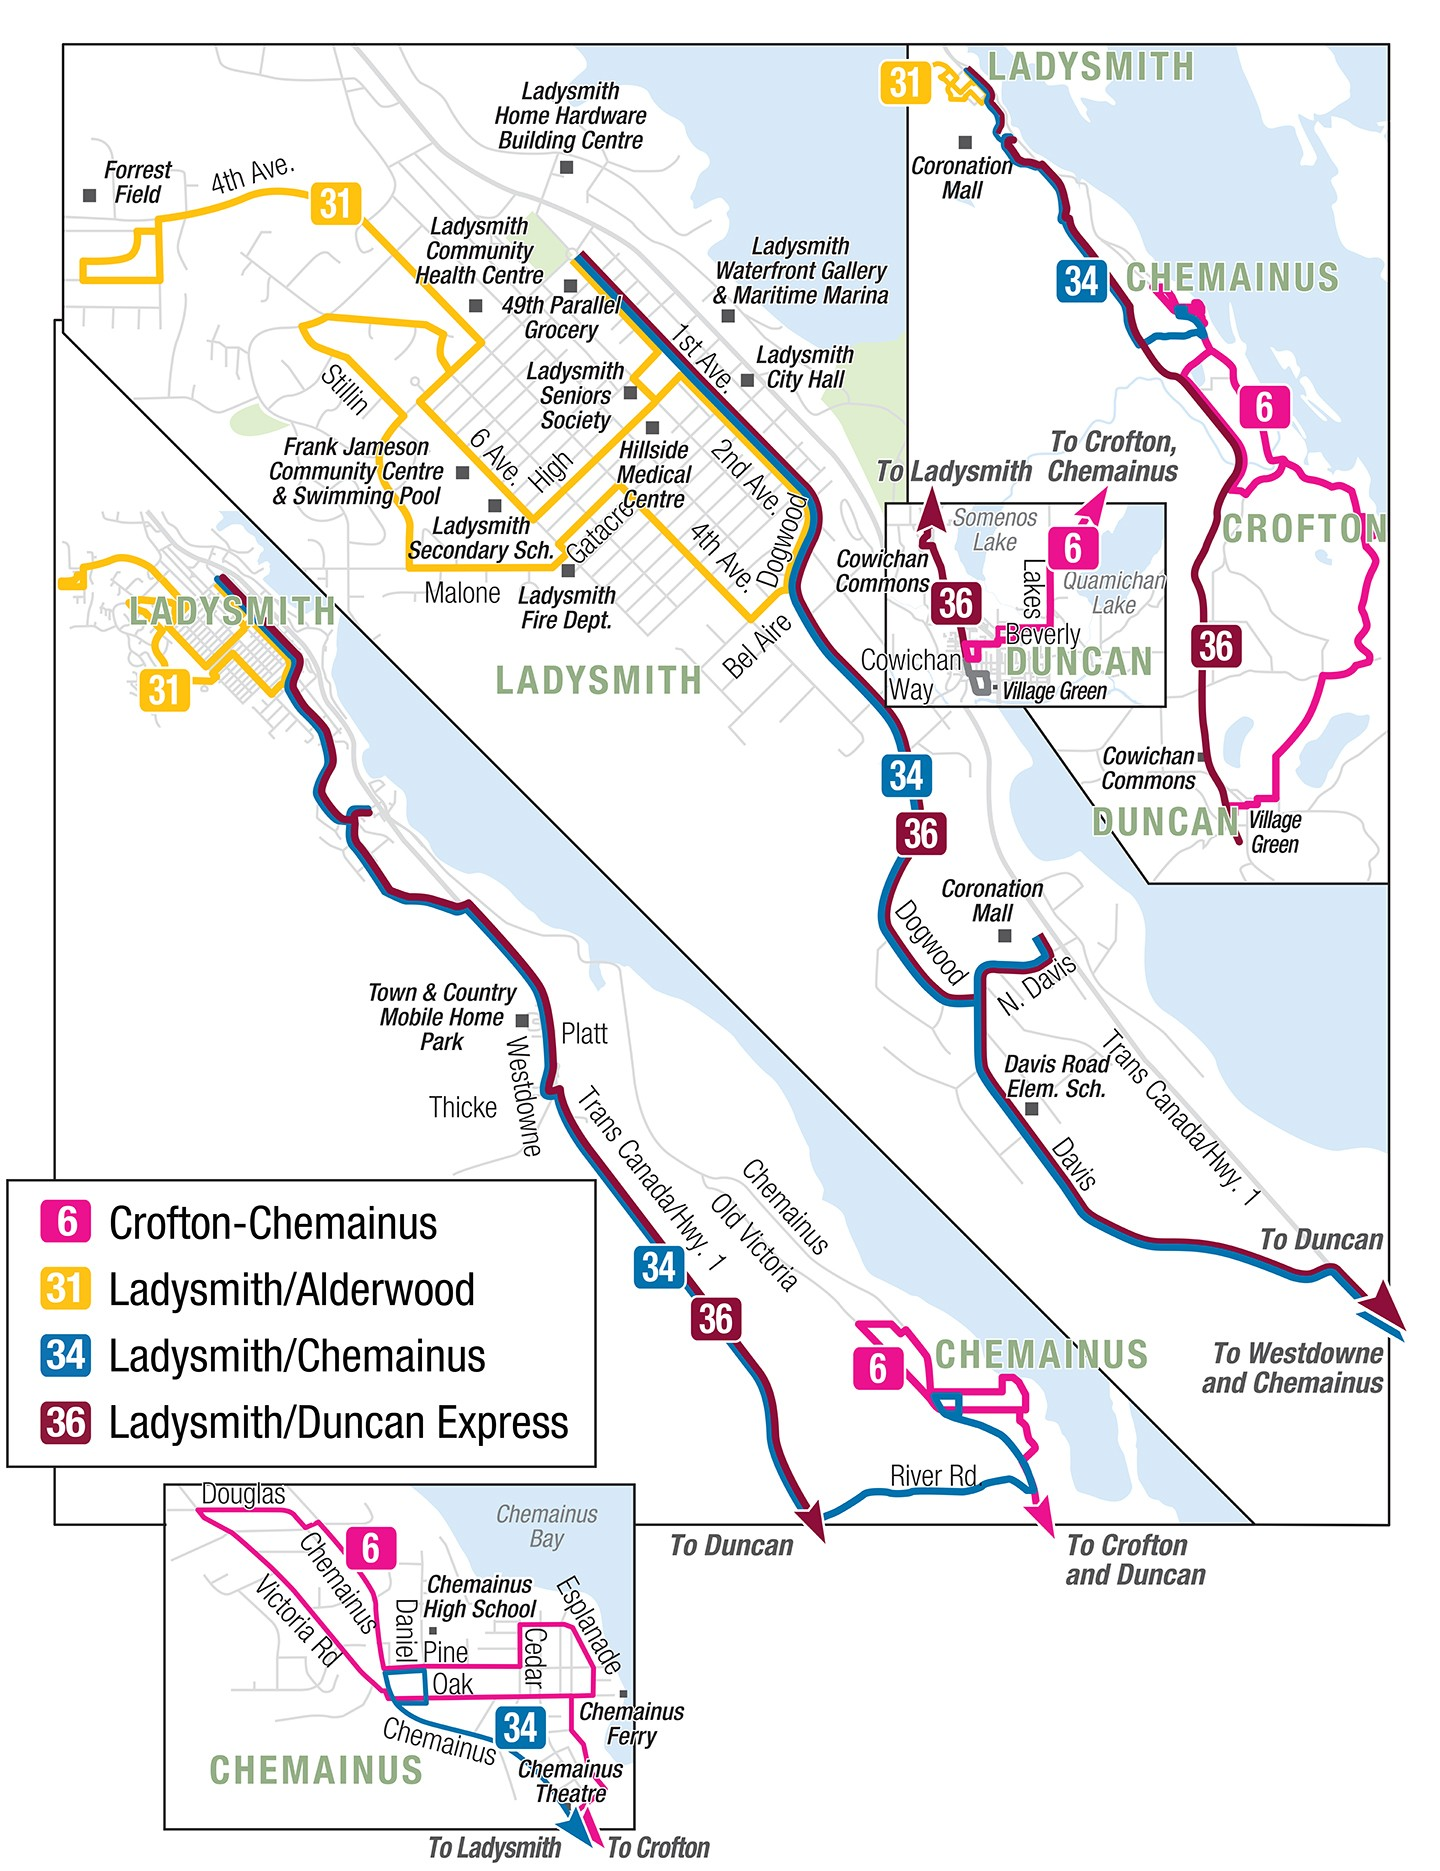 Ladysmith Bus transit routes